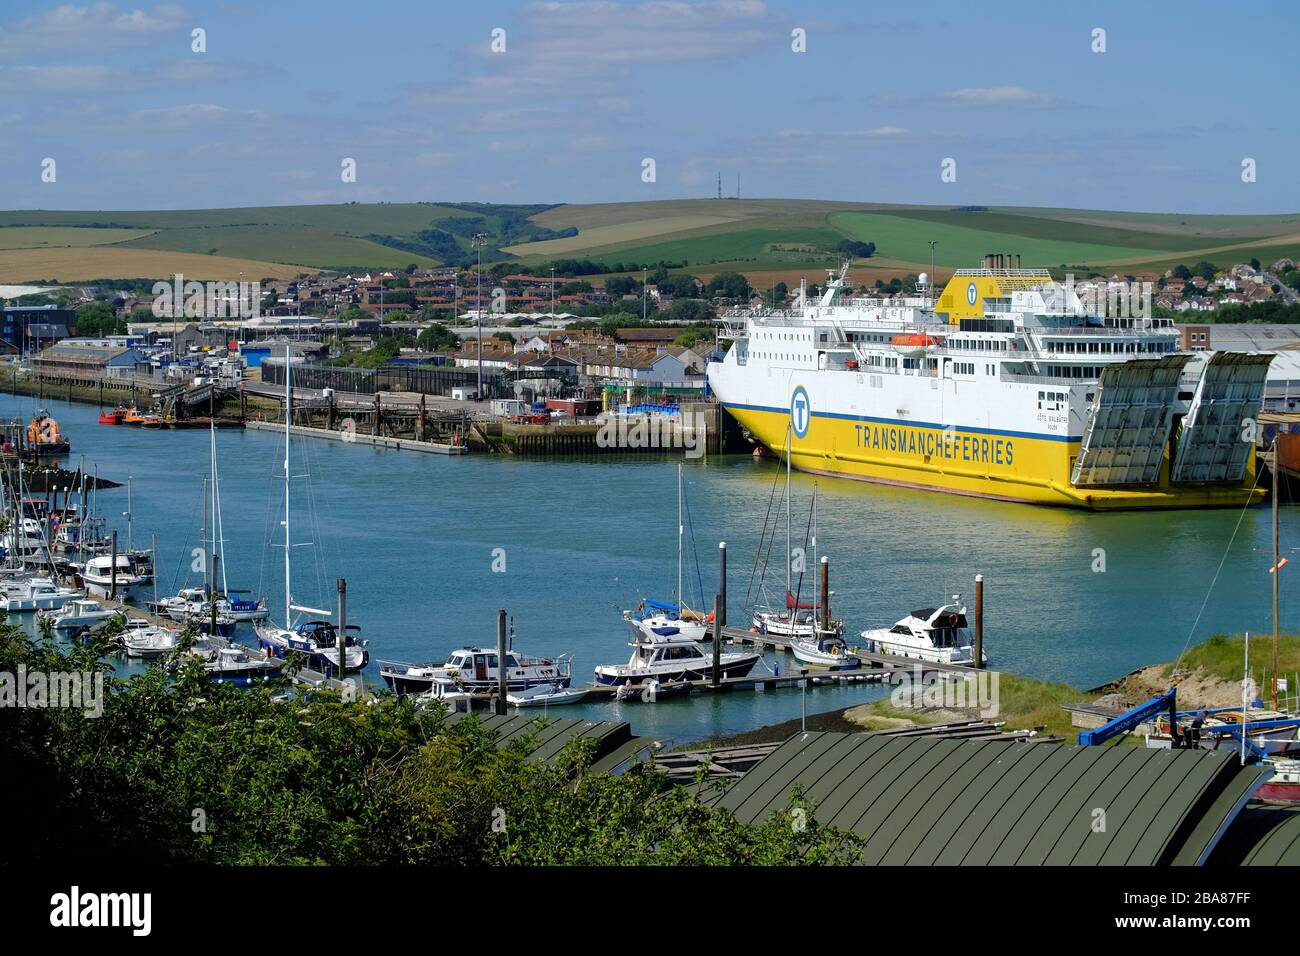 Transmanche cross-channel ferry docked in Newhaven, East Sussex, UK Stock Photo